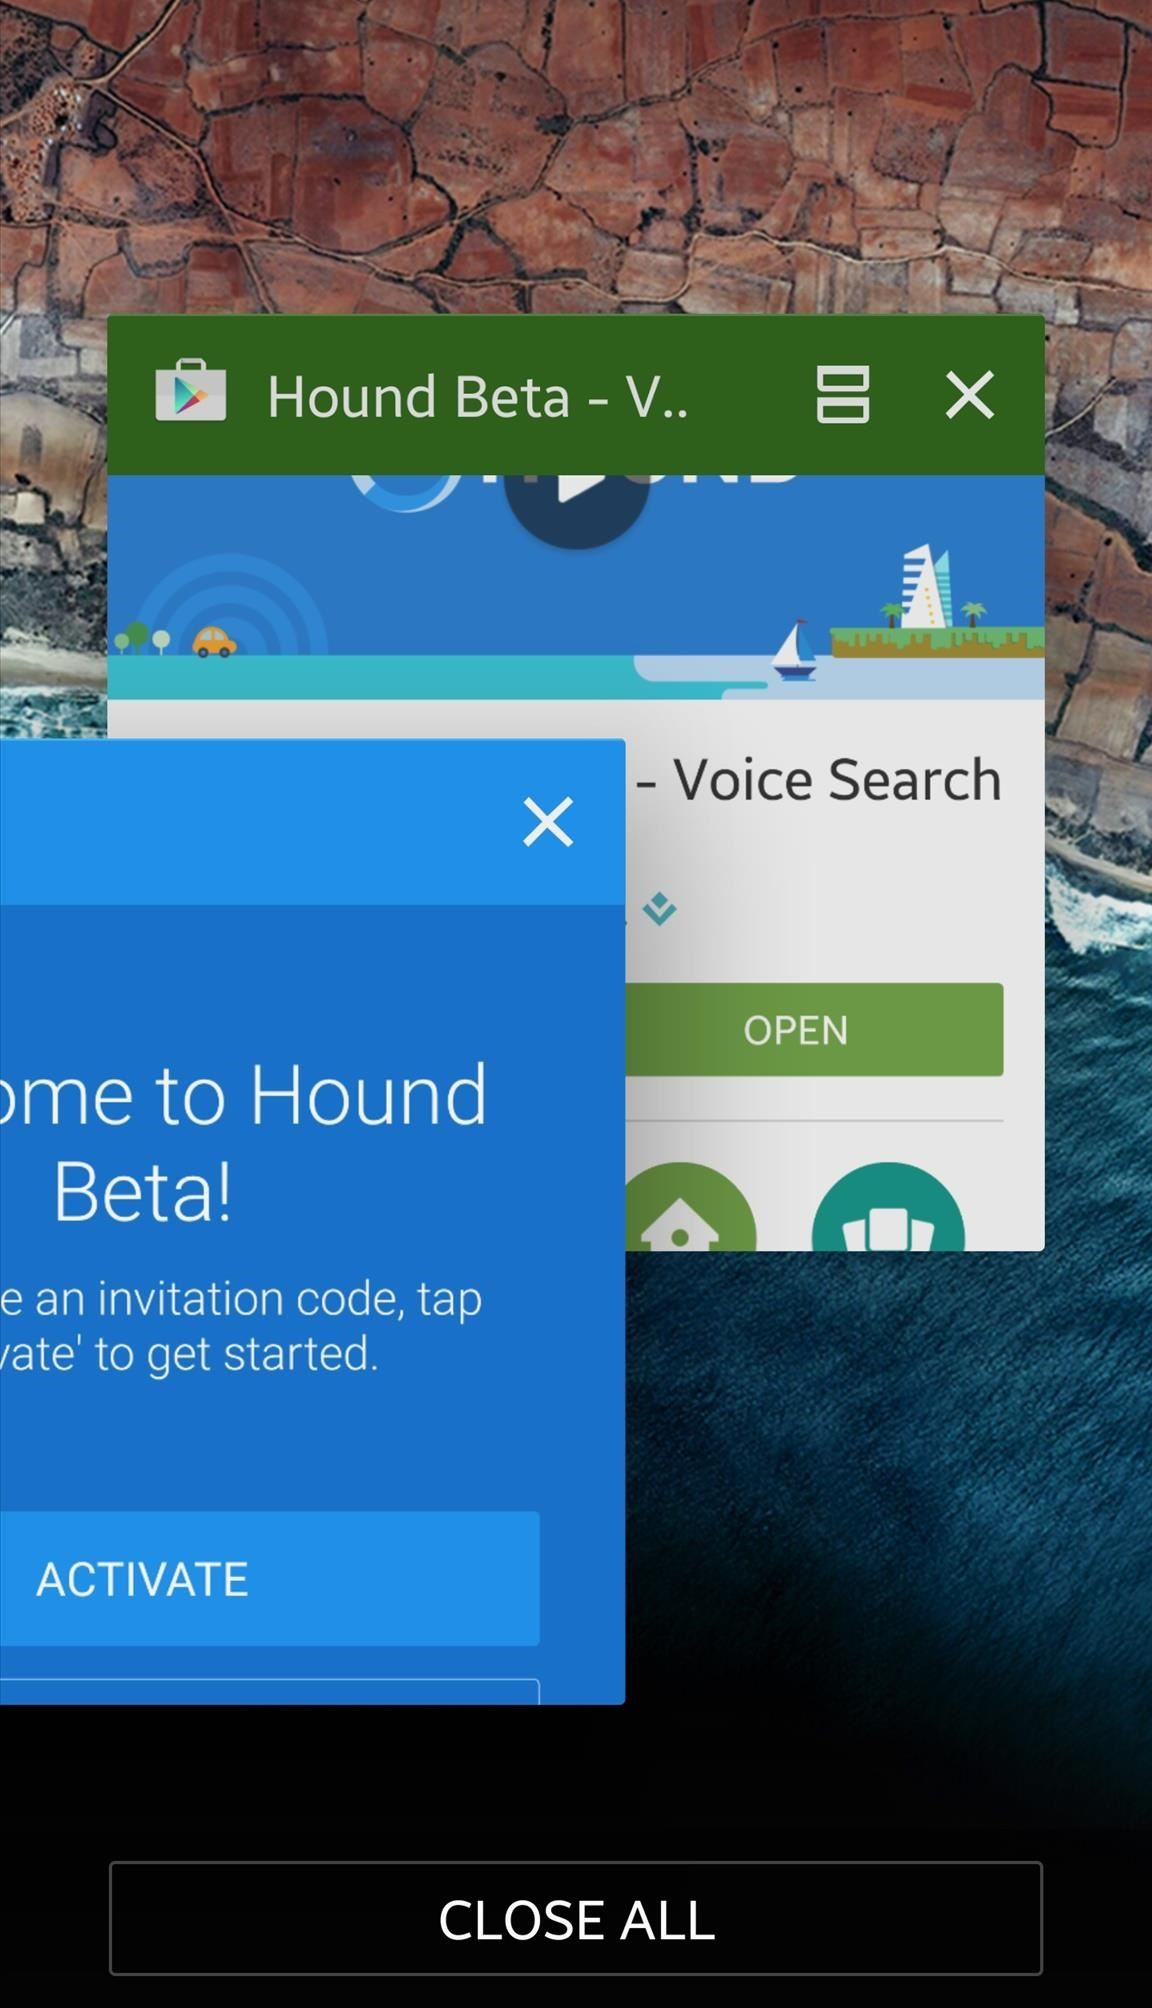 How to Use Hound on Android Without an Activation Code